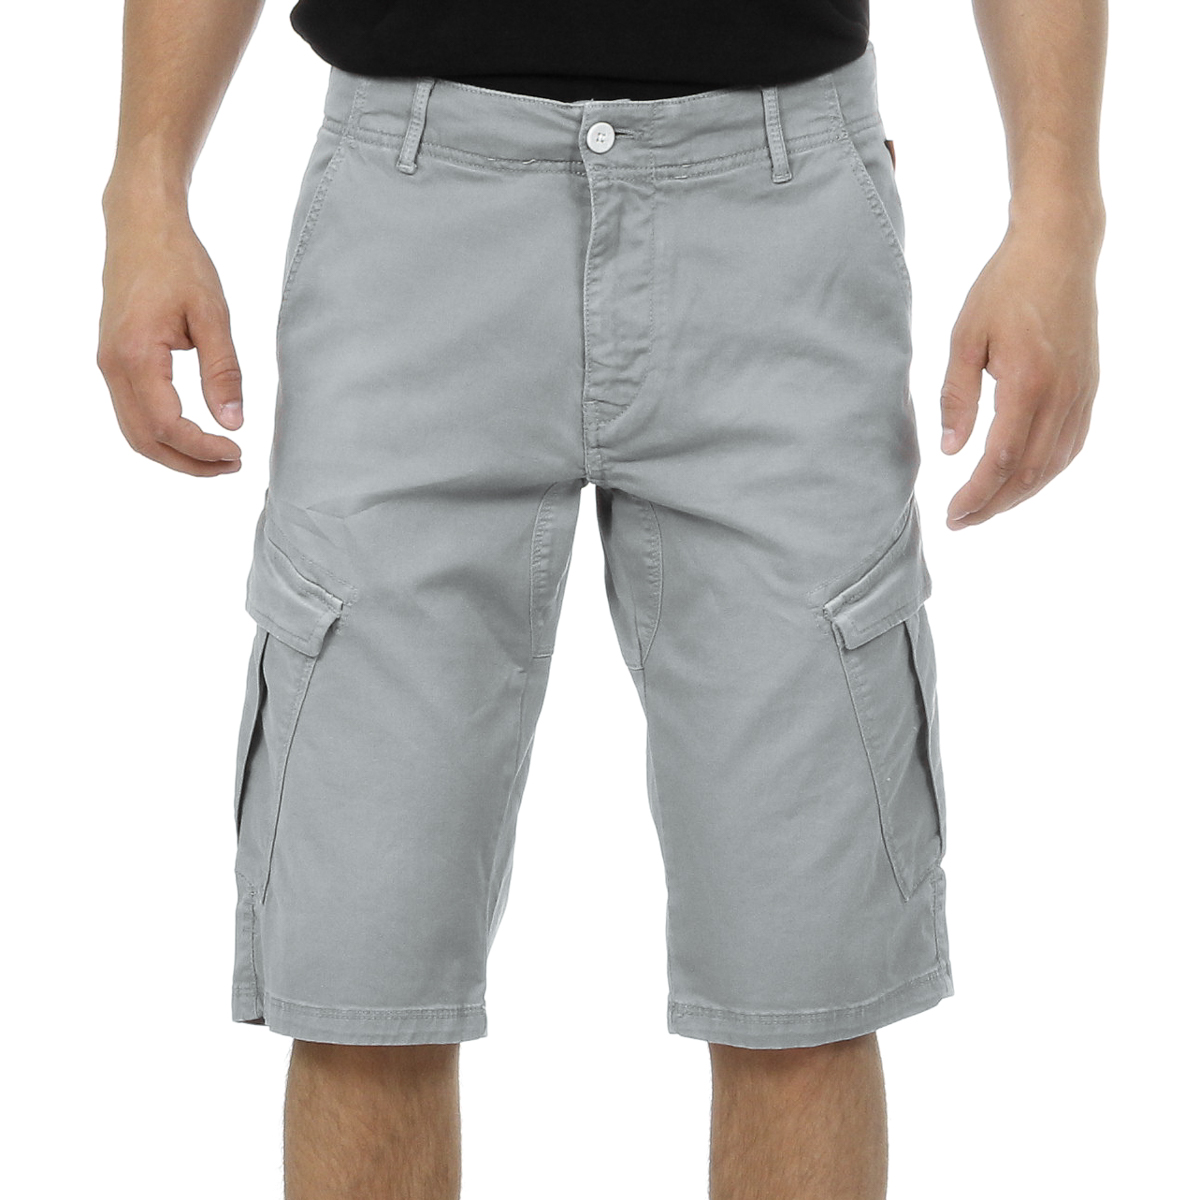 Primary image for Andrew Charles Mens Shorts Light Grey JAKO